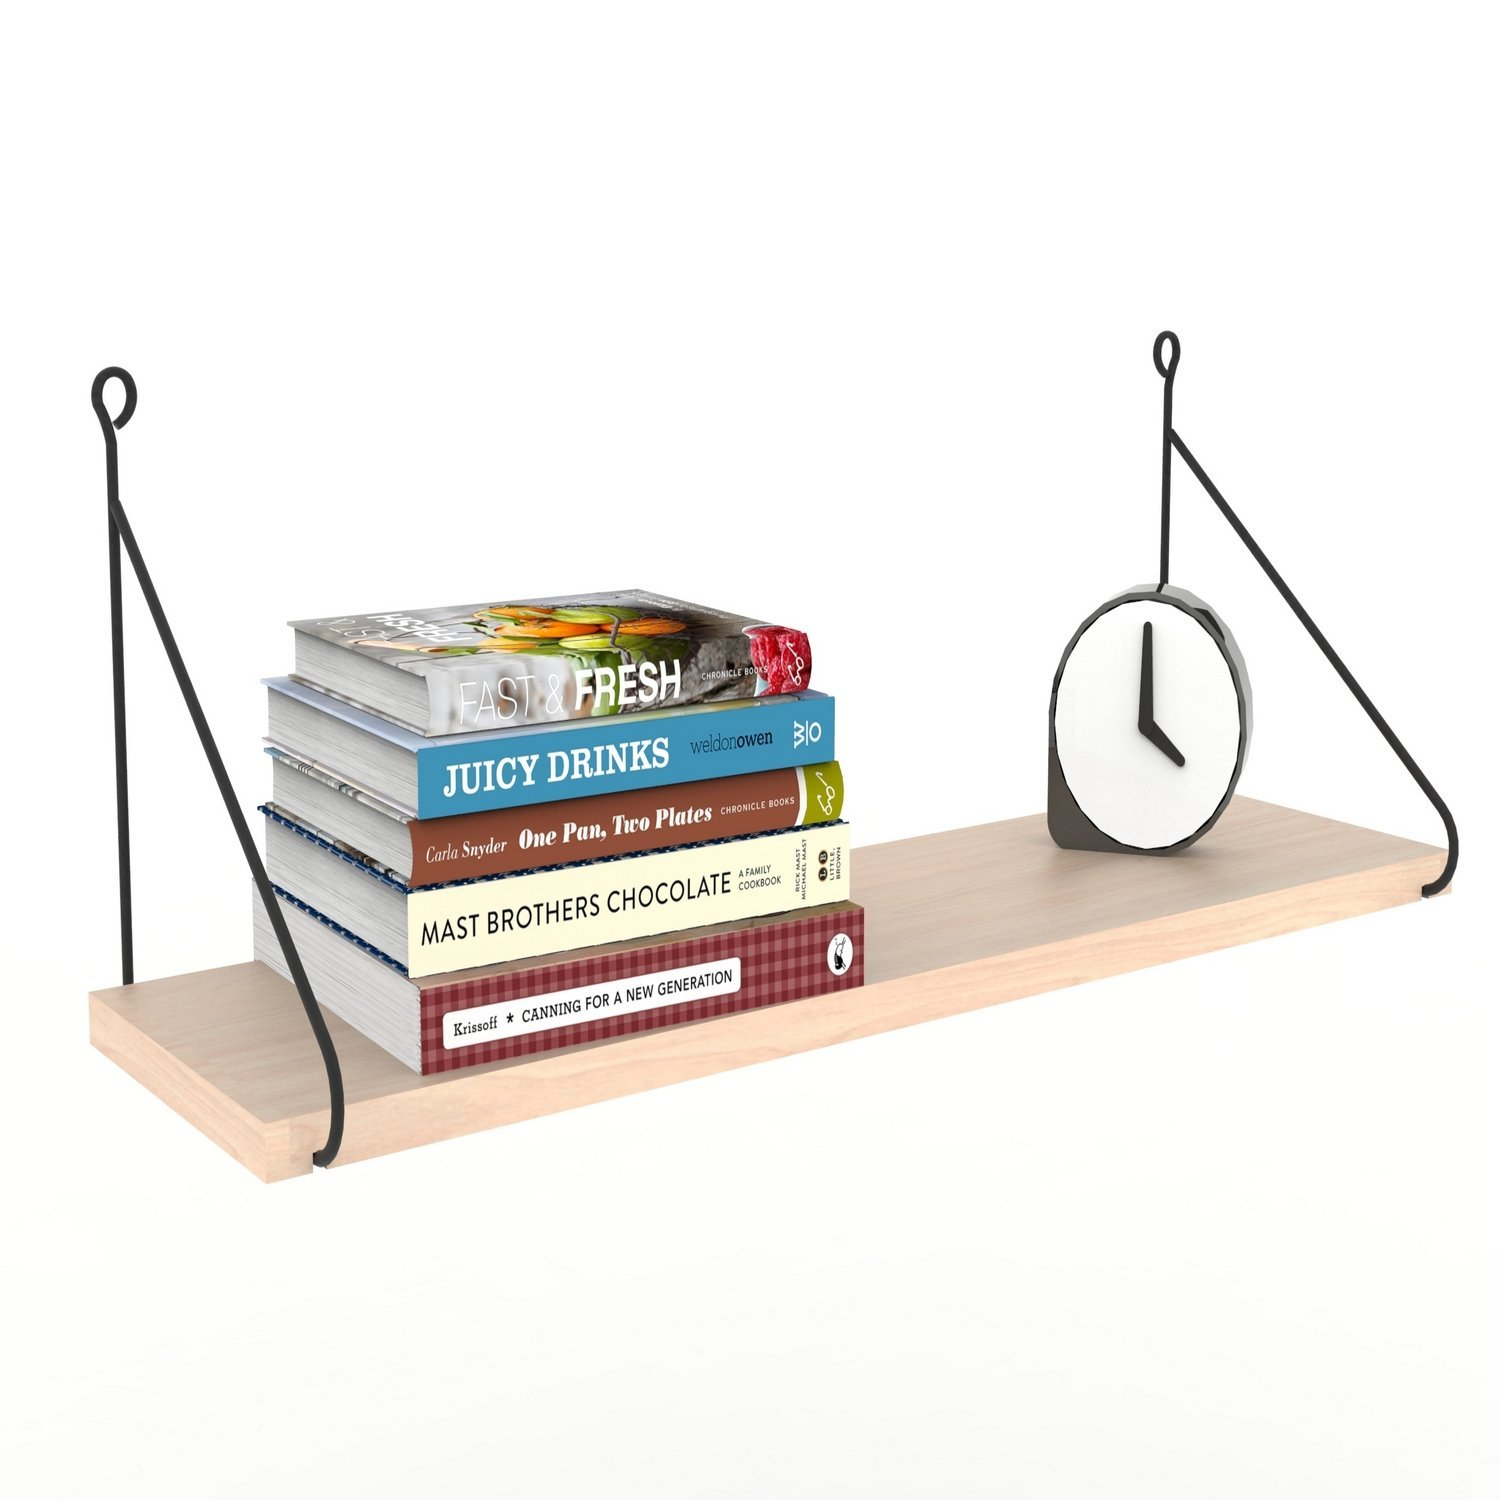 LaModaHome Black Iron Handle Wooden Wall Shelf, 100% Melamine Coated Particle Board - Size (28.3'' x 7.9'' x 7.9''), Easy to Hang with Invisible Brackets, Wall Mounted Floating Shelves for Home & Office